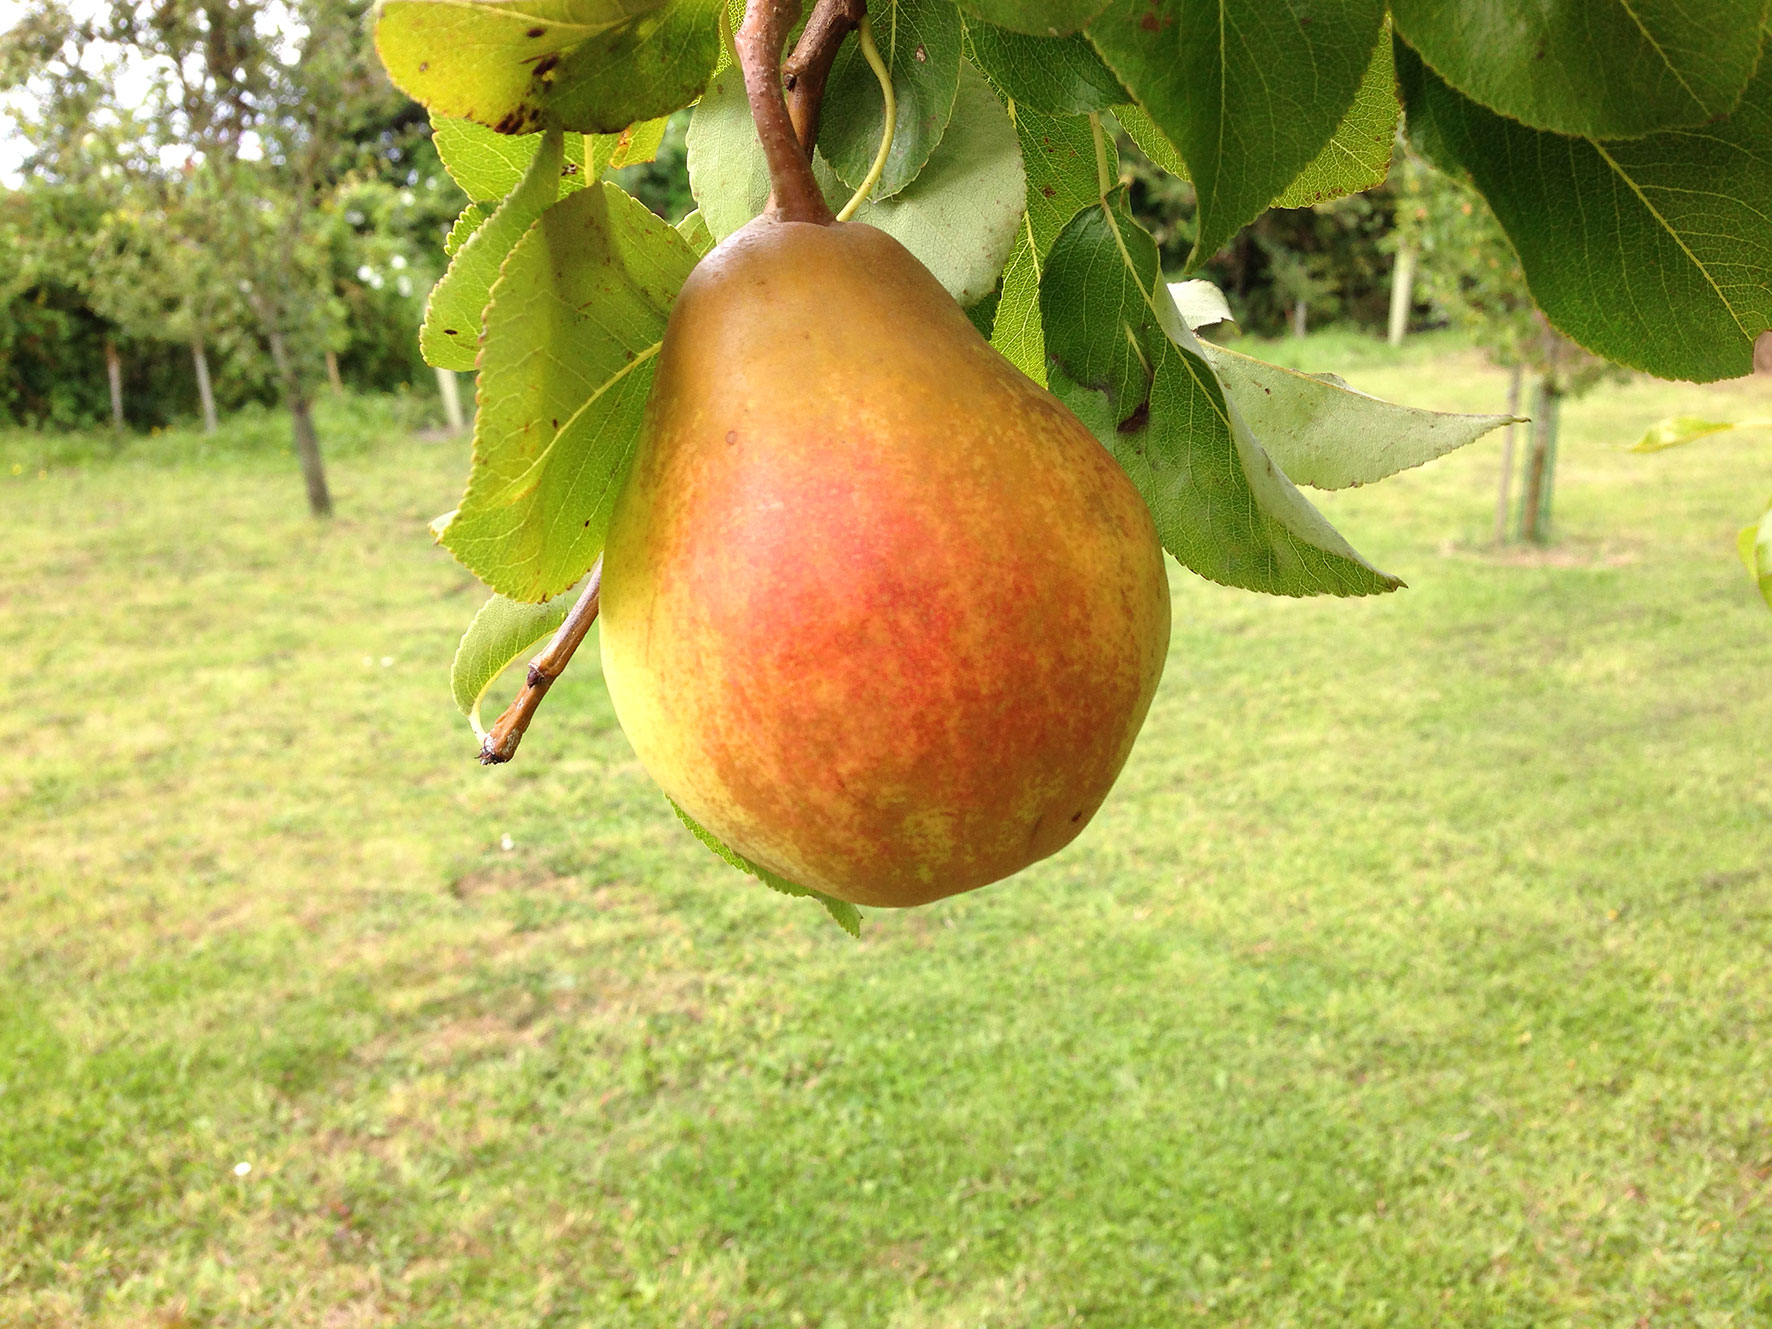 A pear with fruit on top of a grass covered field. A pear with fruit on top of a field.